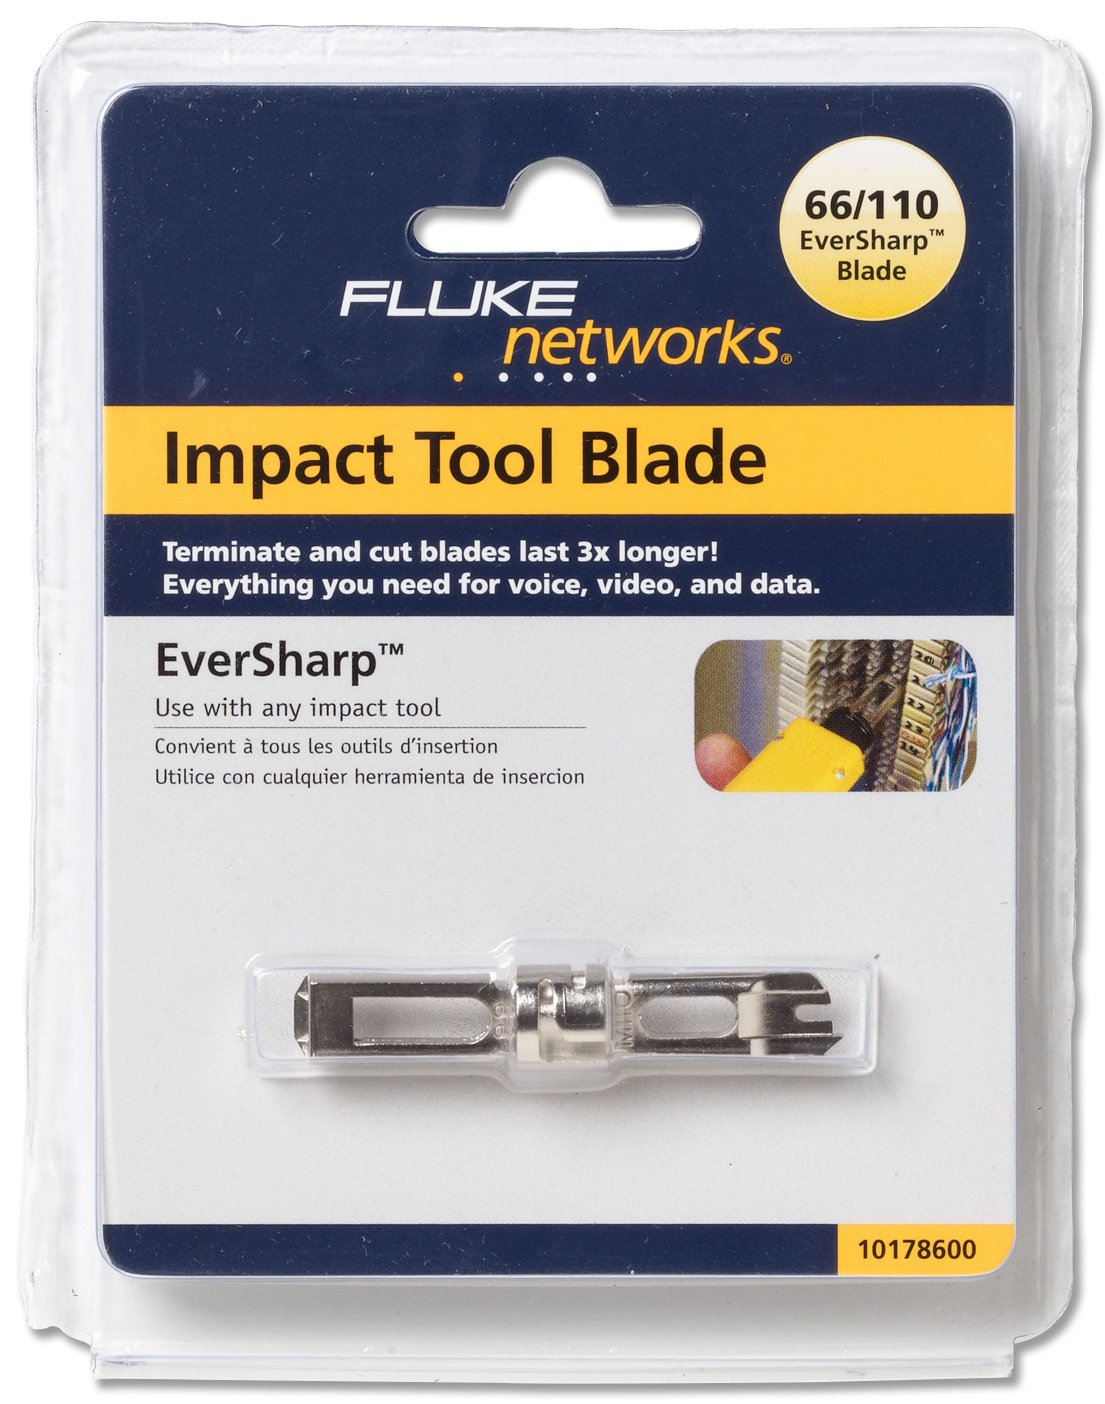 Fluke Networks 10565110 Krone//110 Combination Cut Blade for D814 Series and D914 Series Impact Tools